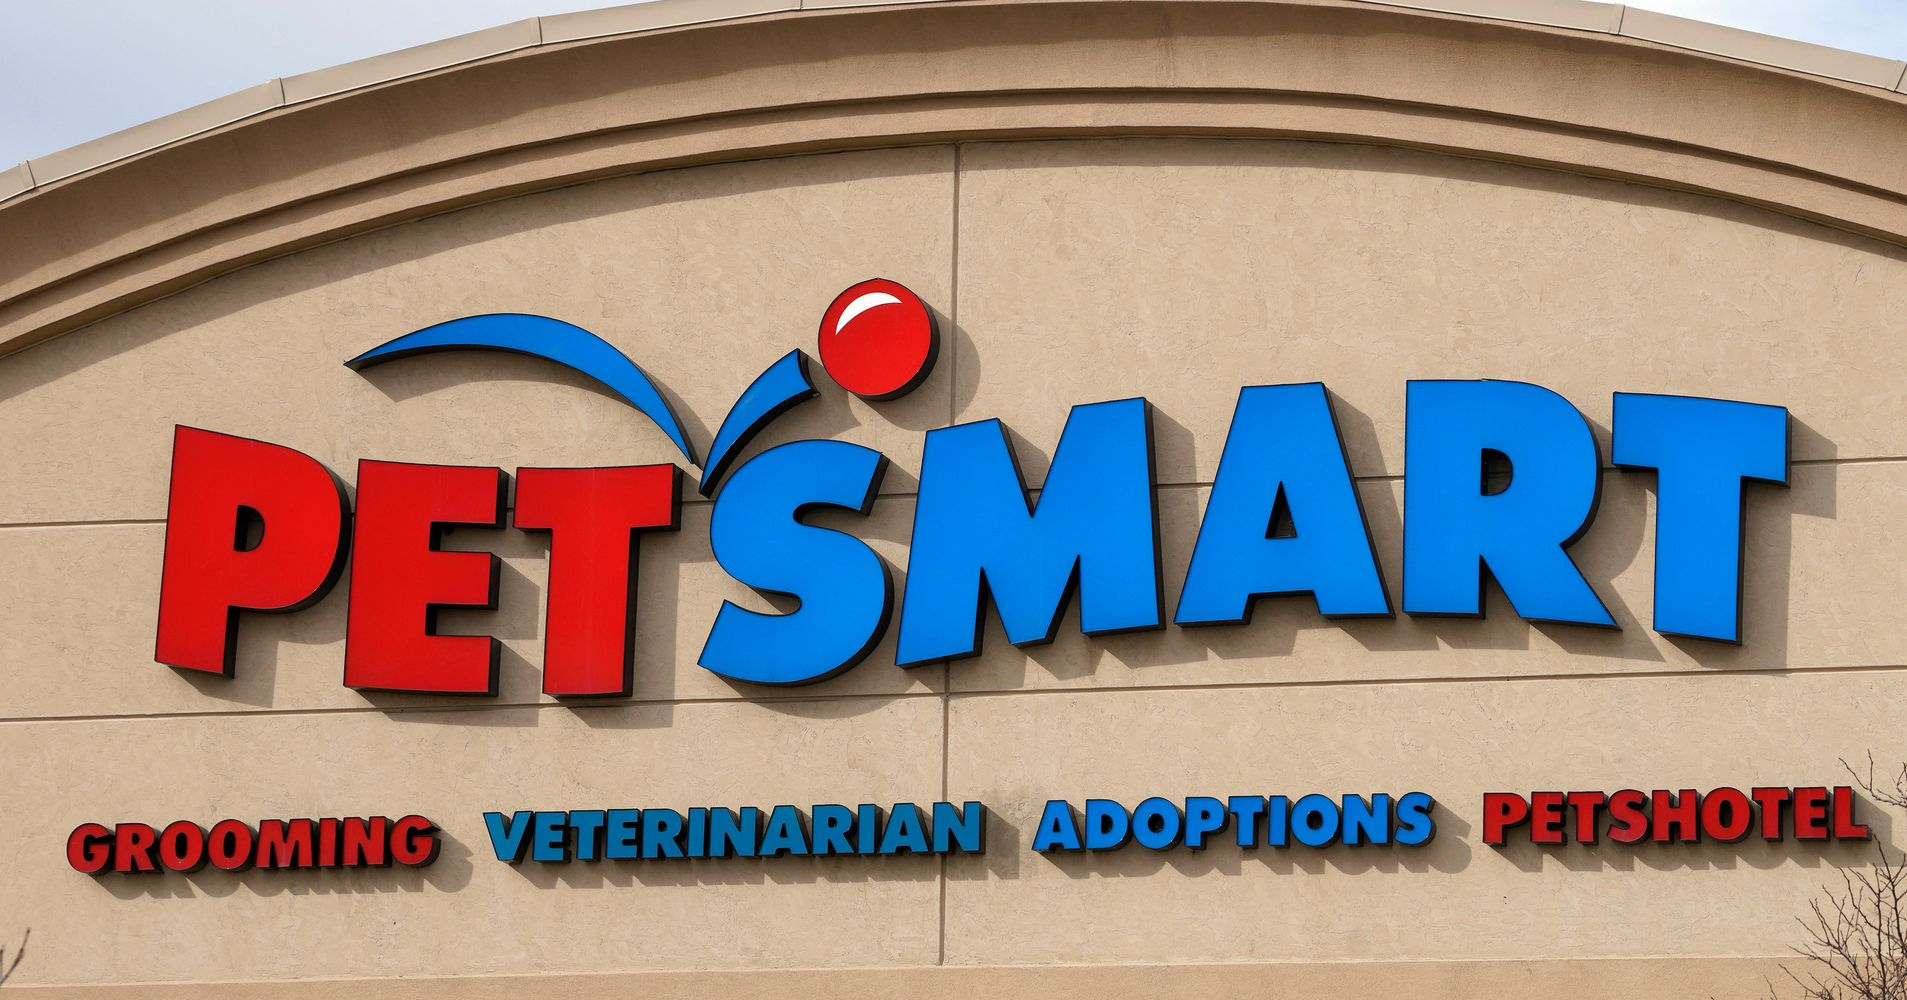 petsmart faces demand for answers after dog grooming deaths report